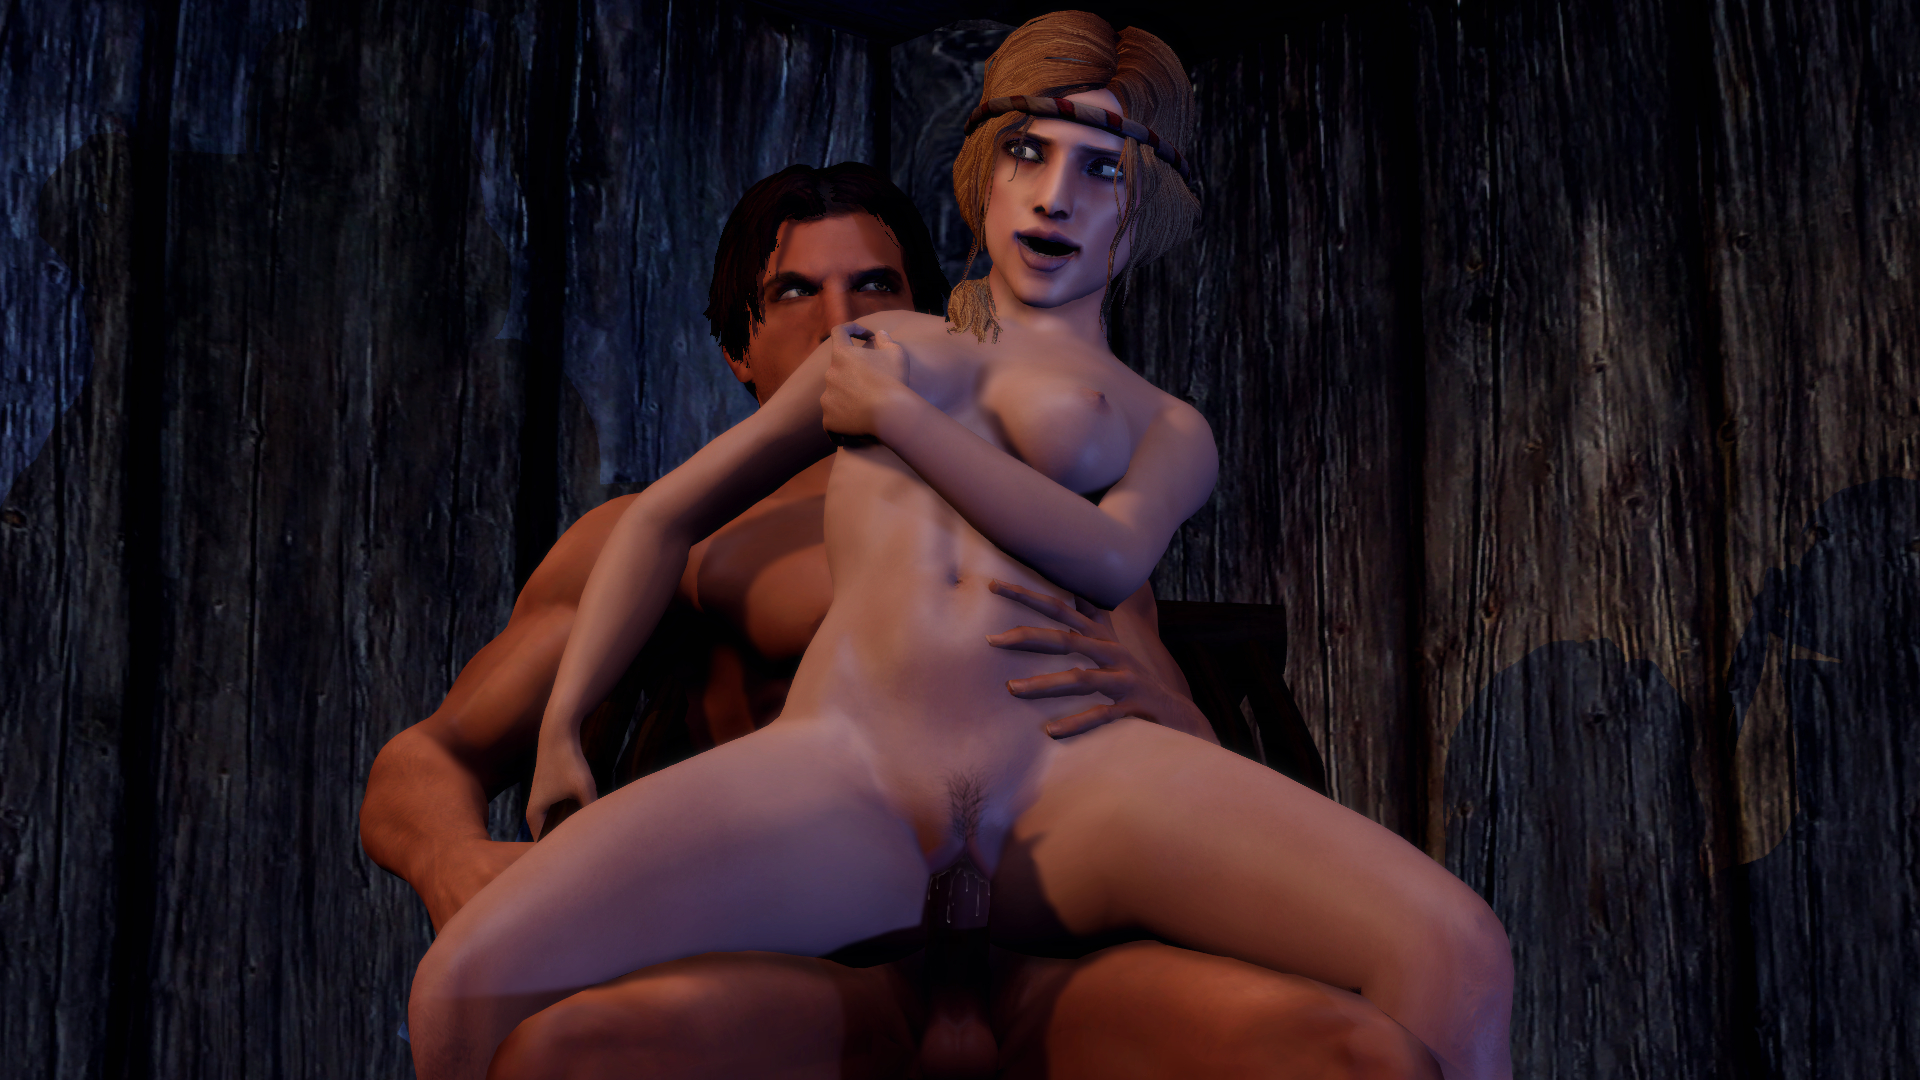 Gmod hentai model exposed scene